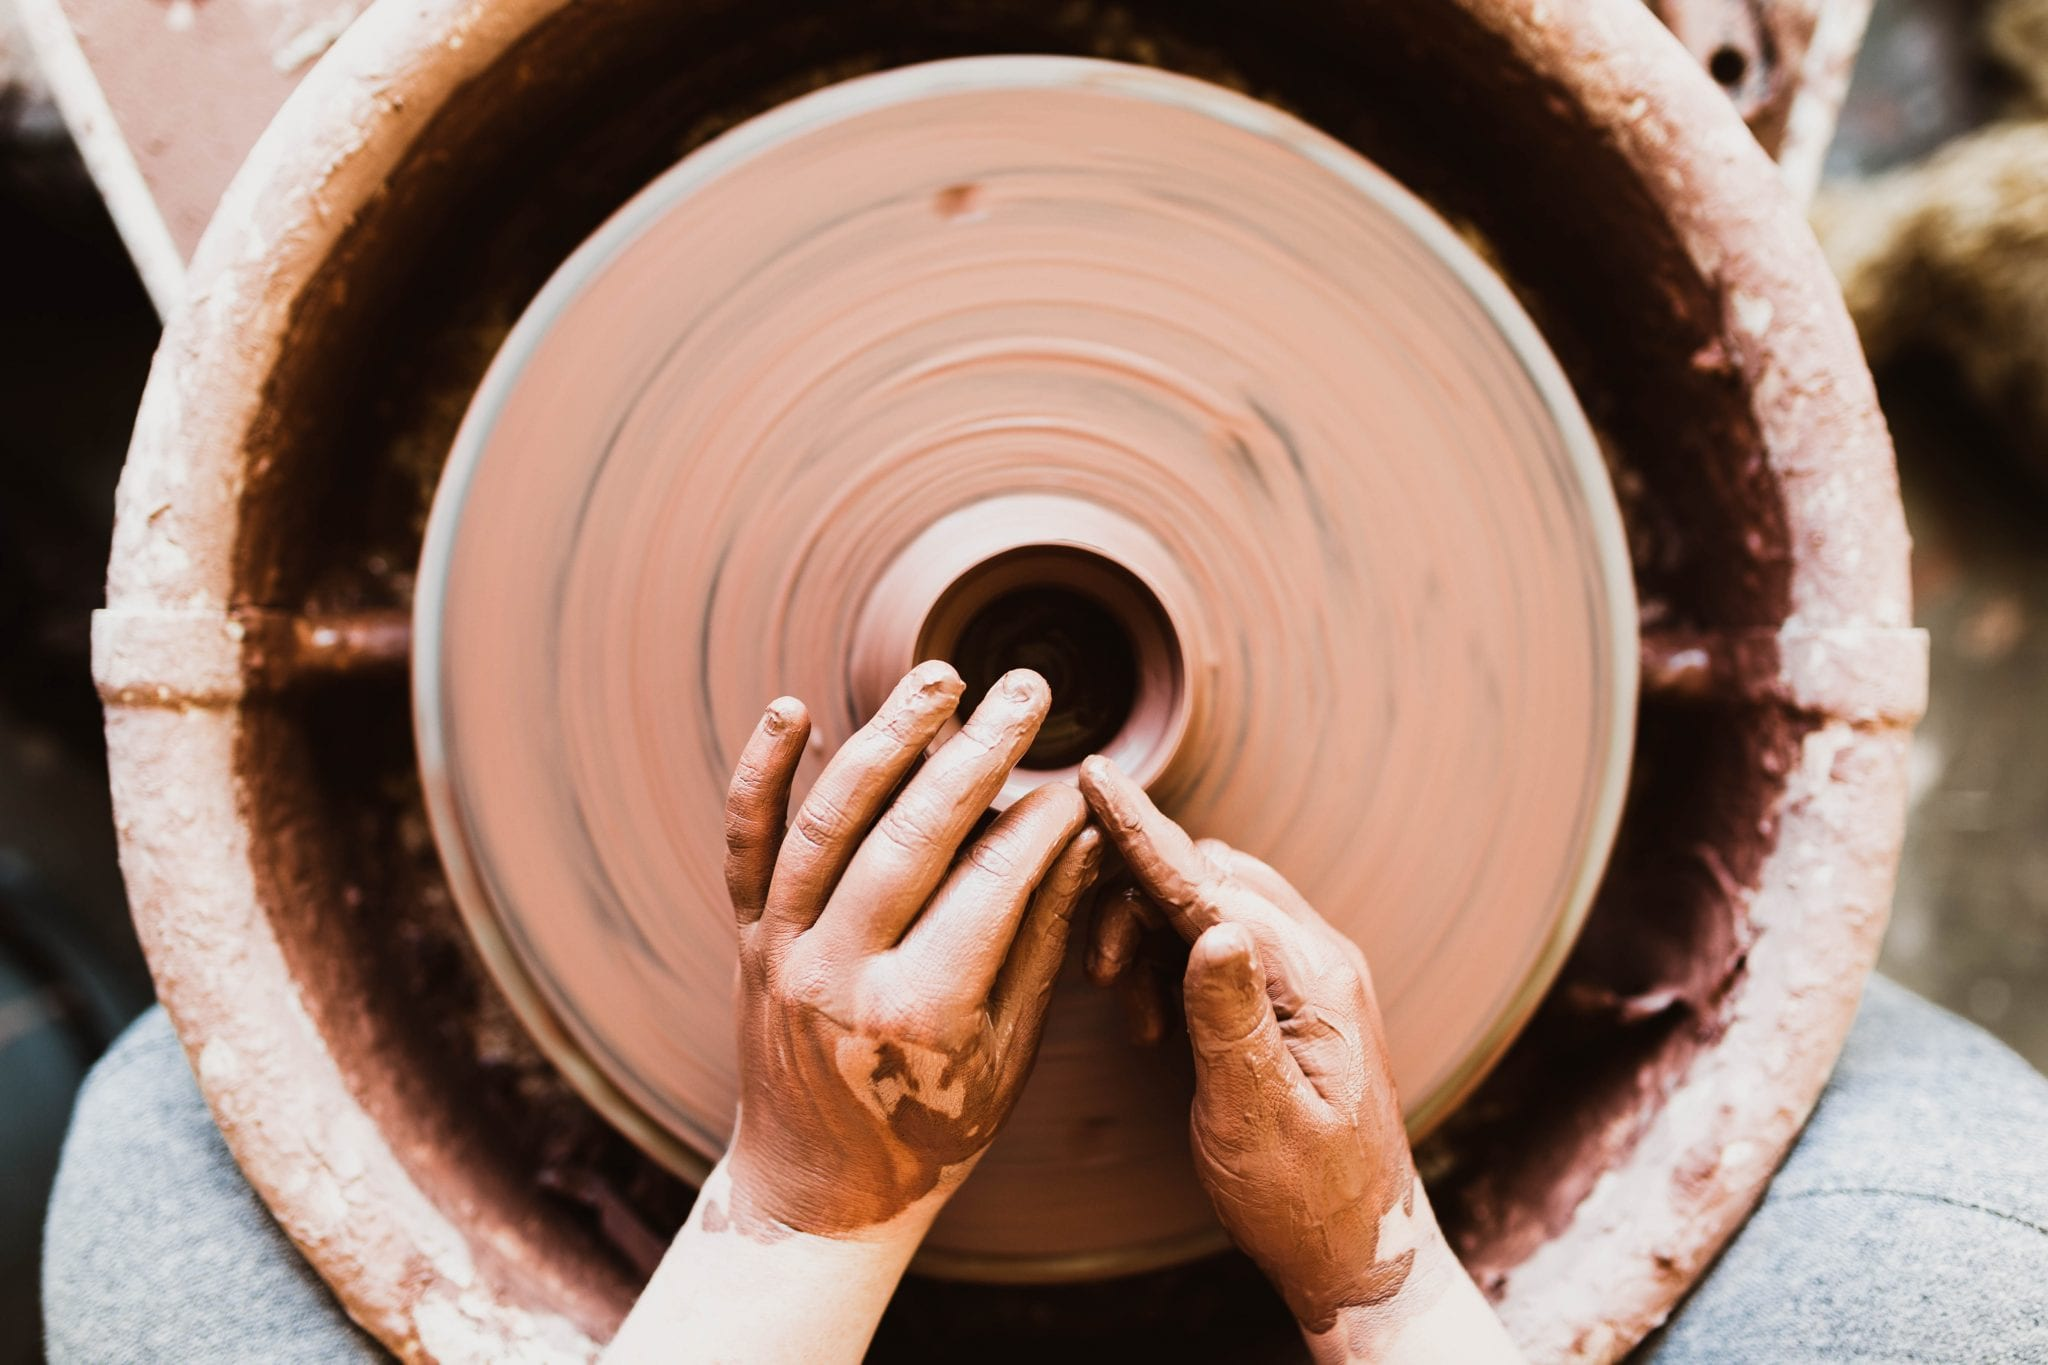 The Stardust-Startup Factory pottery diy learning